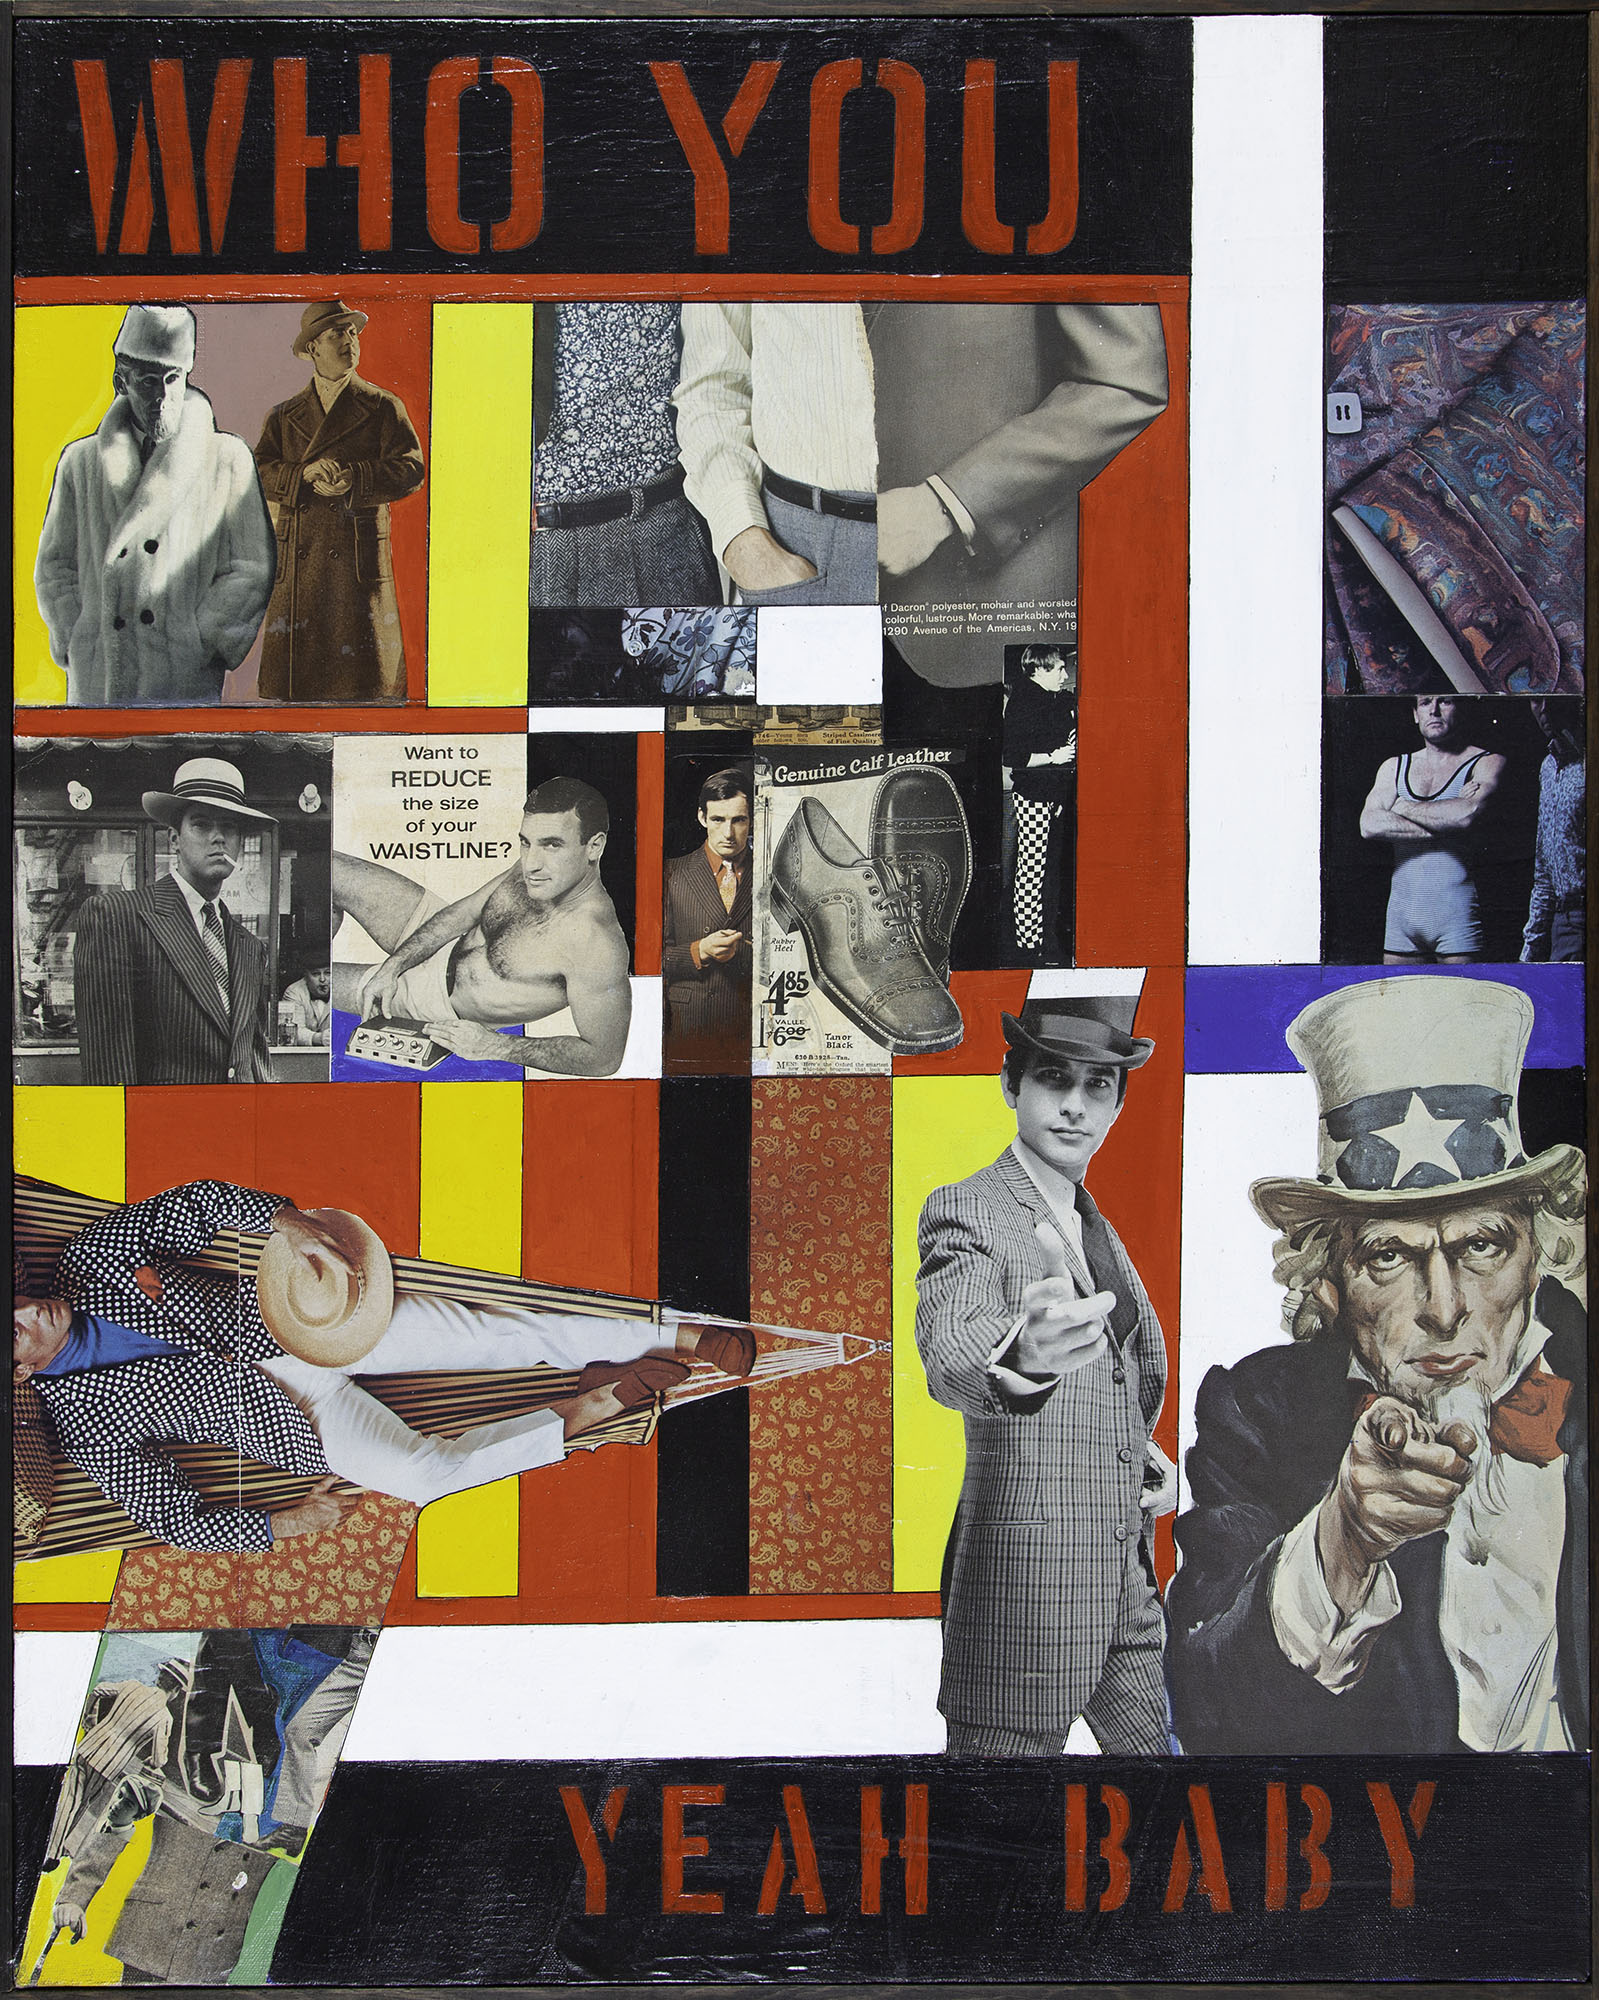 Ralph Arnold, Who You/Yeah Baby, ca. 1968. Oil and collage on canvas. Collection of DePaul Art Museum, Art Acquisition Endowment, 2008.81